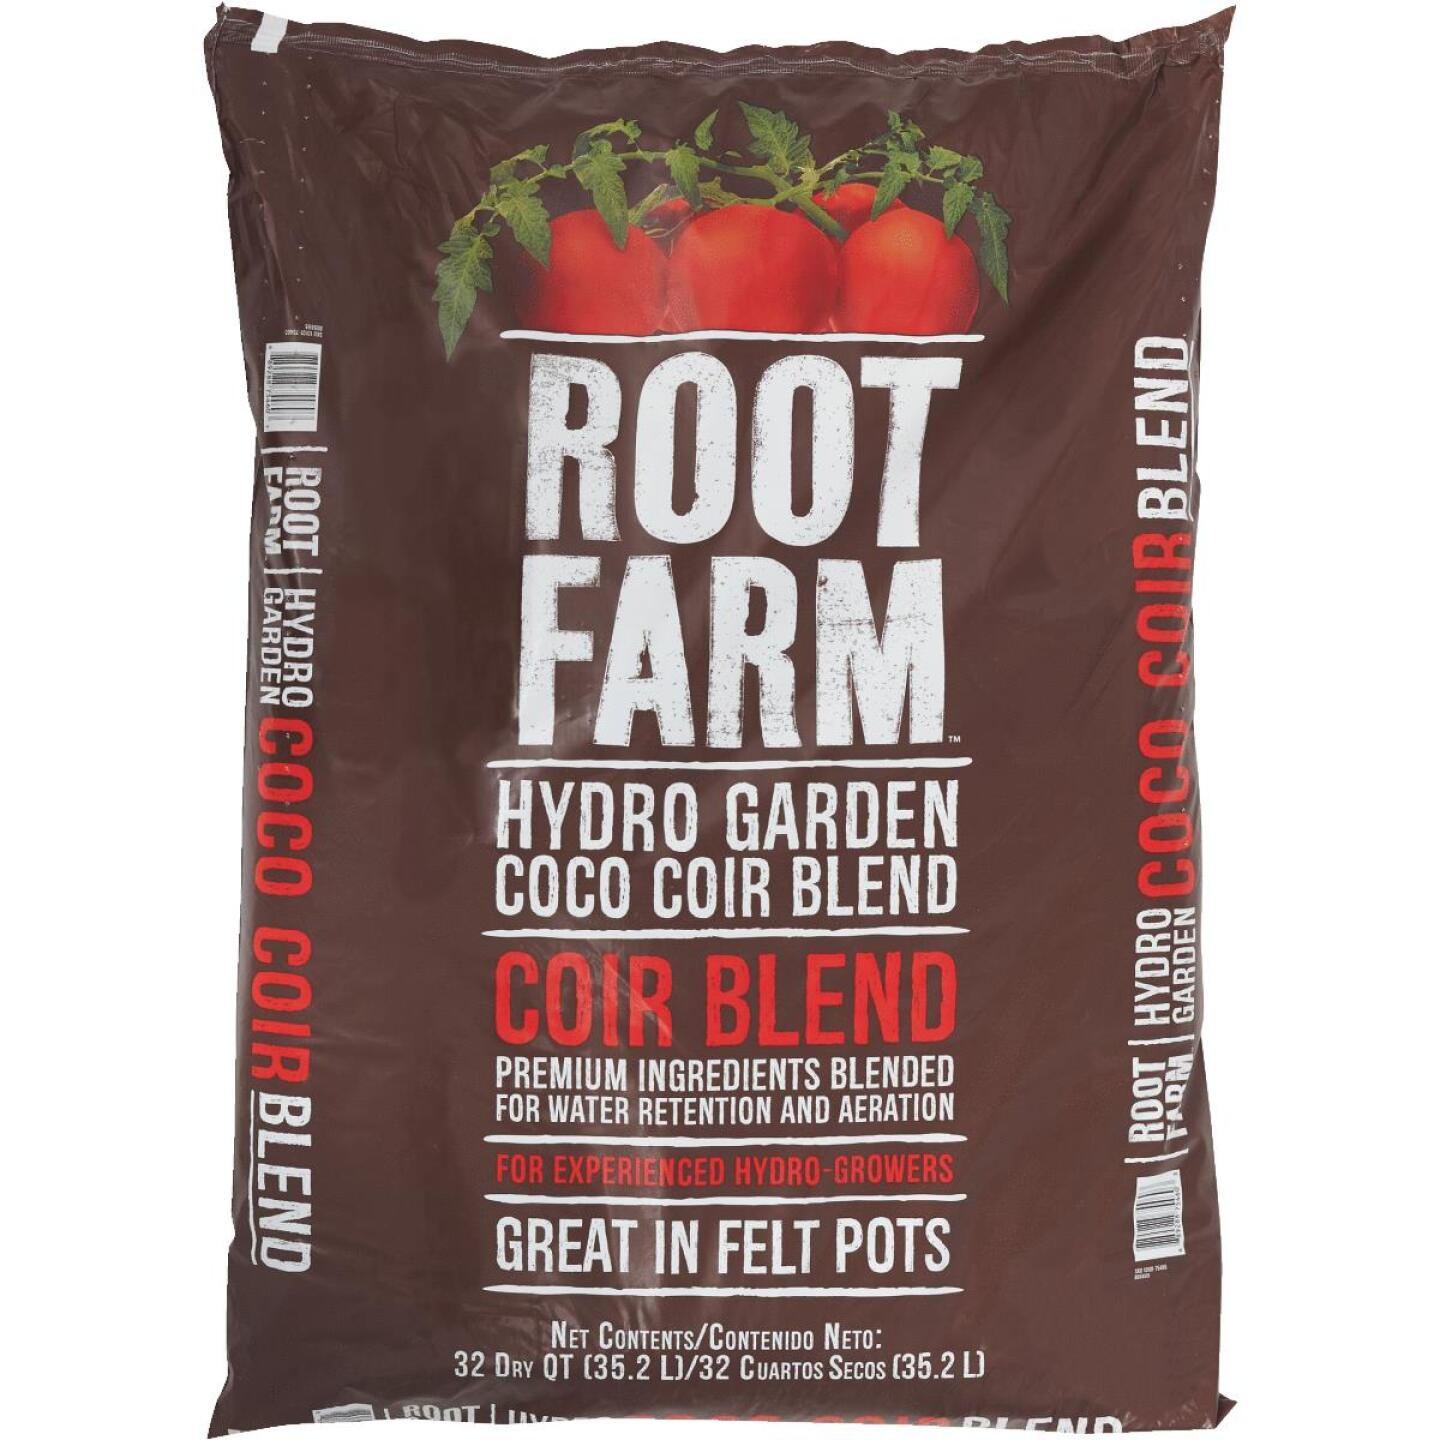 Root Farm 32 Qt. Hydroponic Growing Medium Coco Coir Blend Image 2